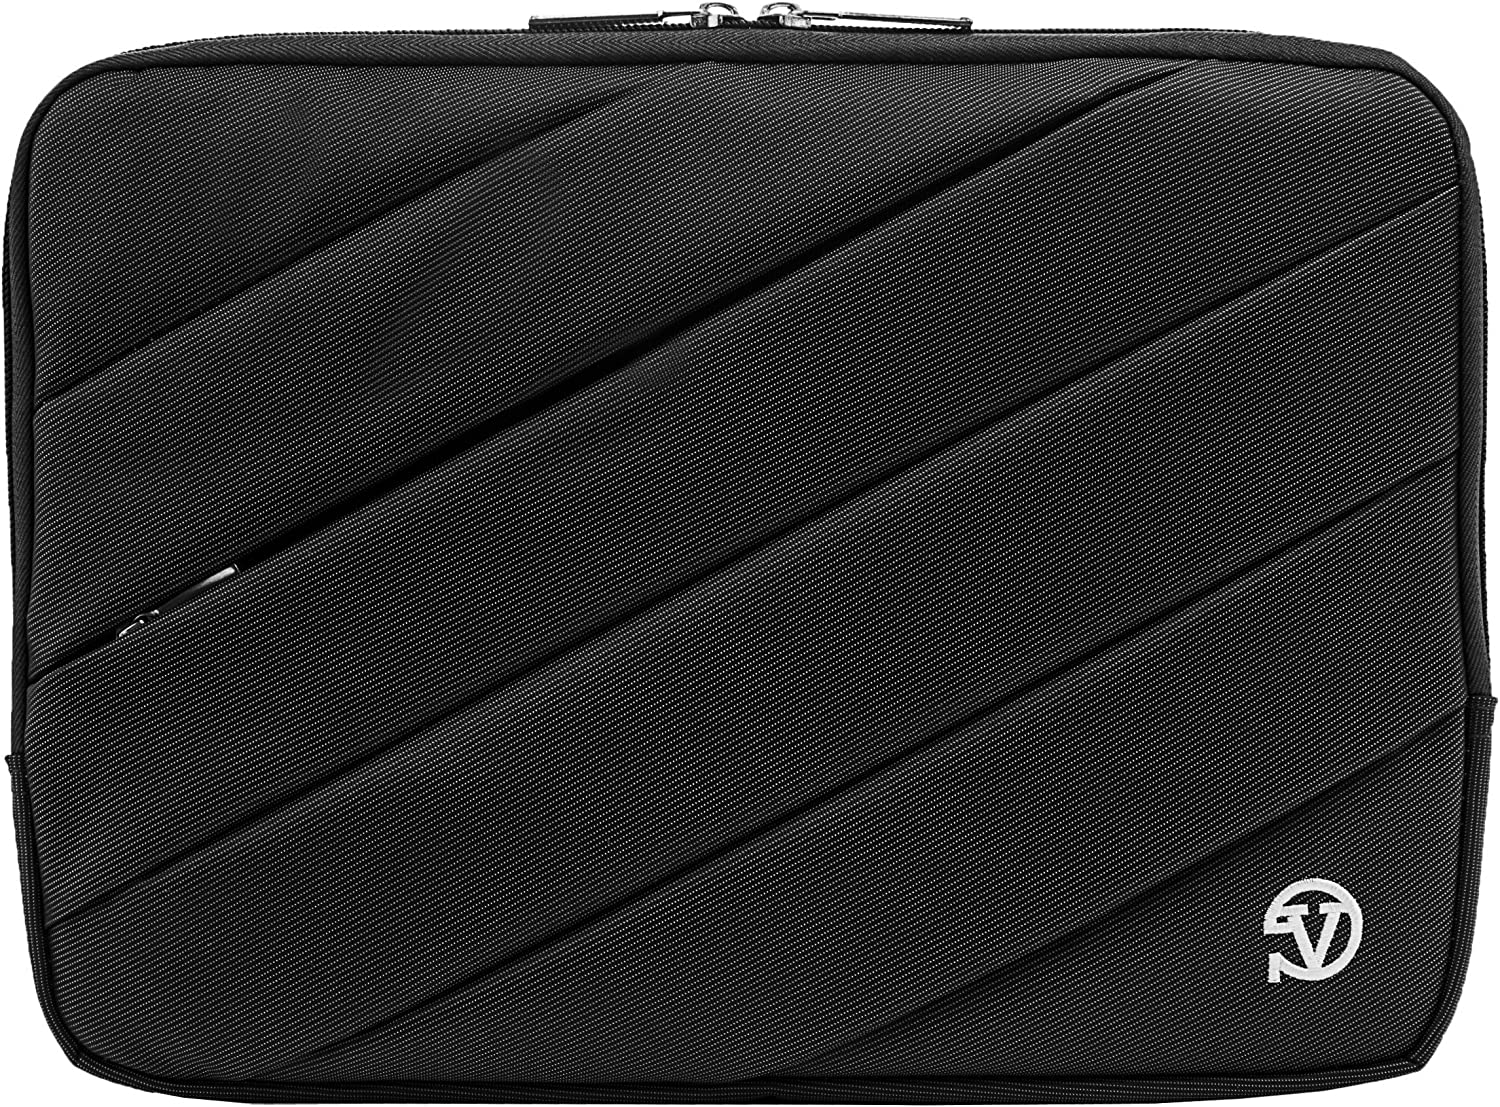 Protective Shock Absorbing Laptop Sleeve Case (Black, 11.6 to 12.5 inch) for Acer Aspire Series, Switch, ChromeBook, Spin 1